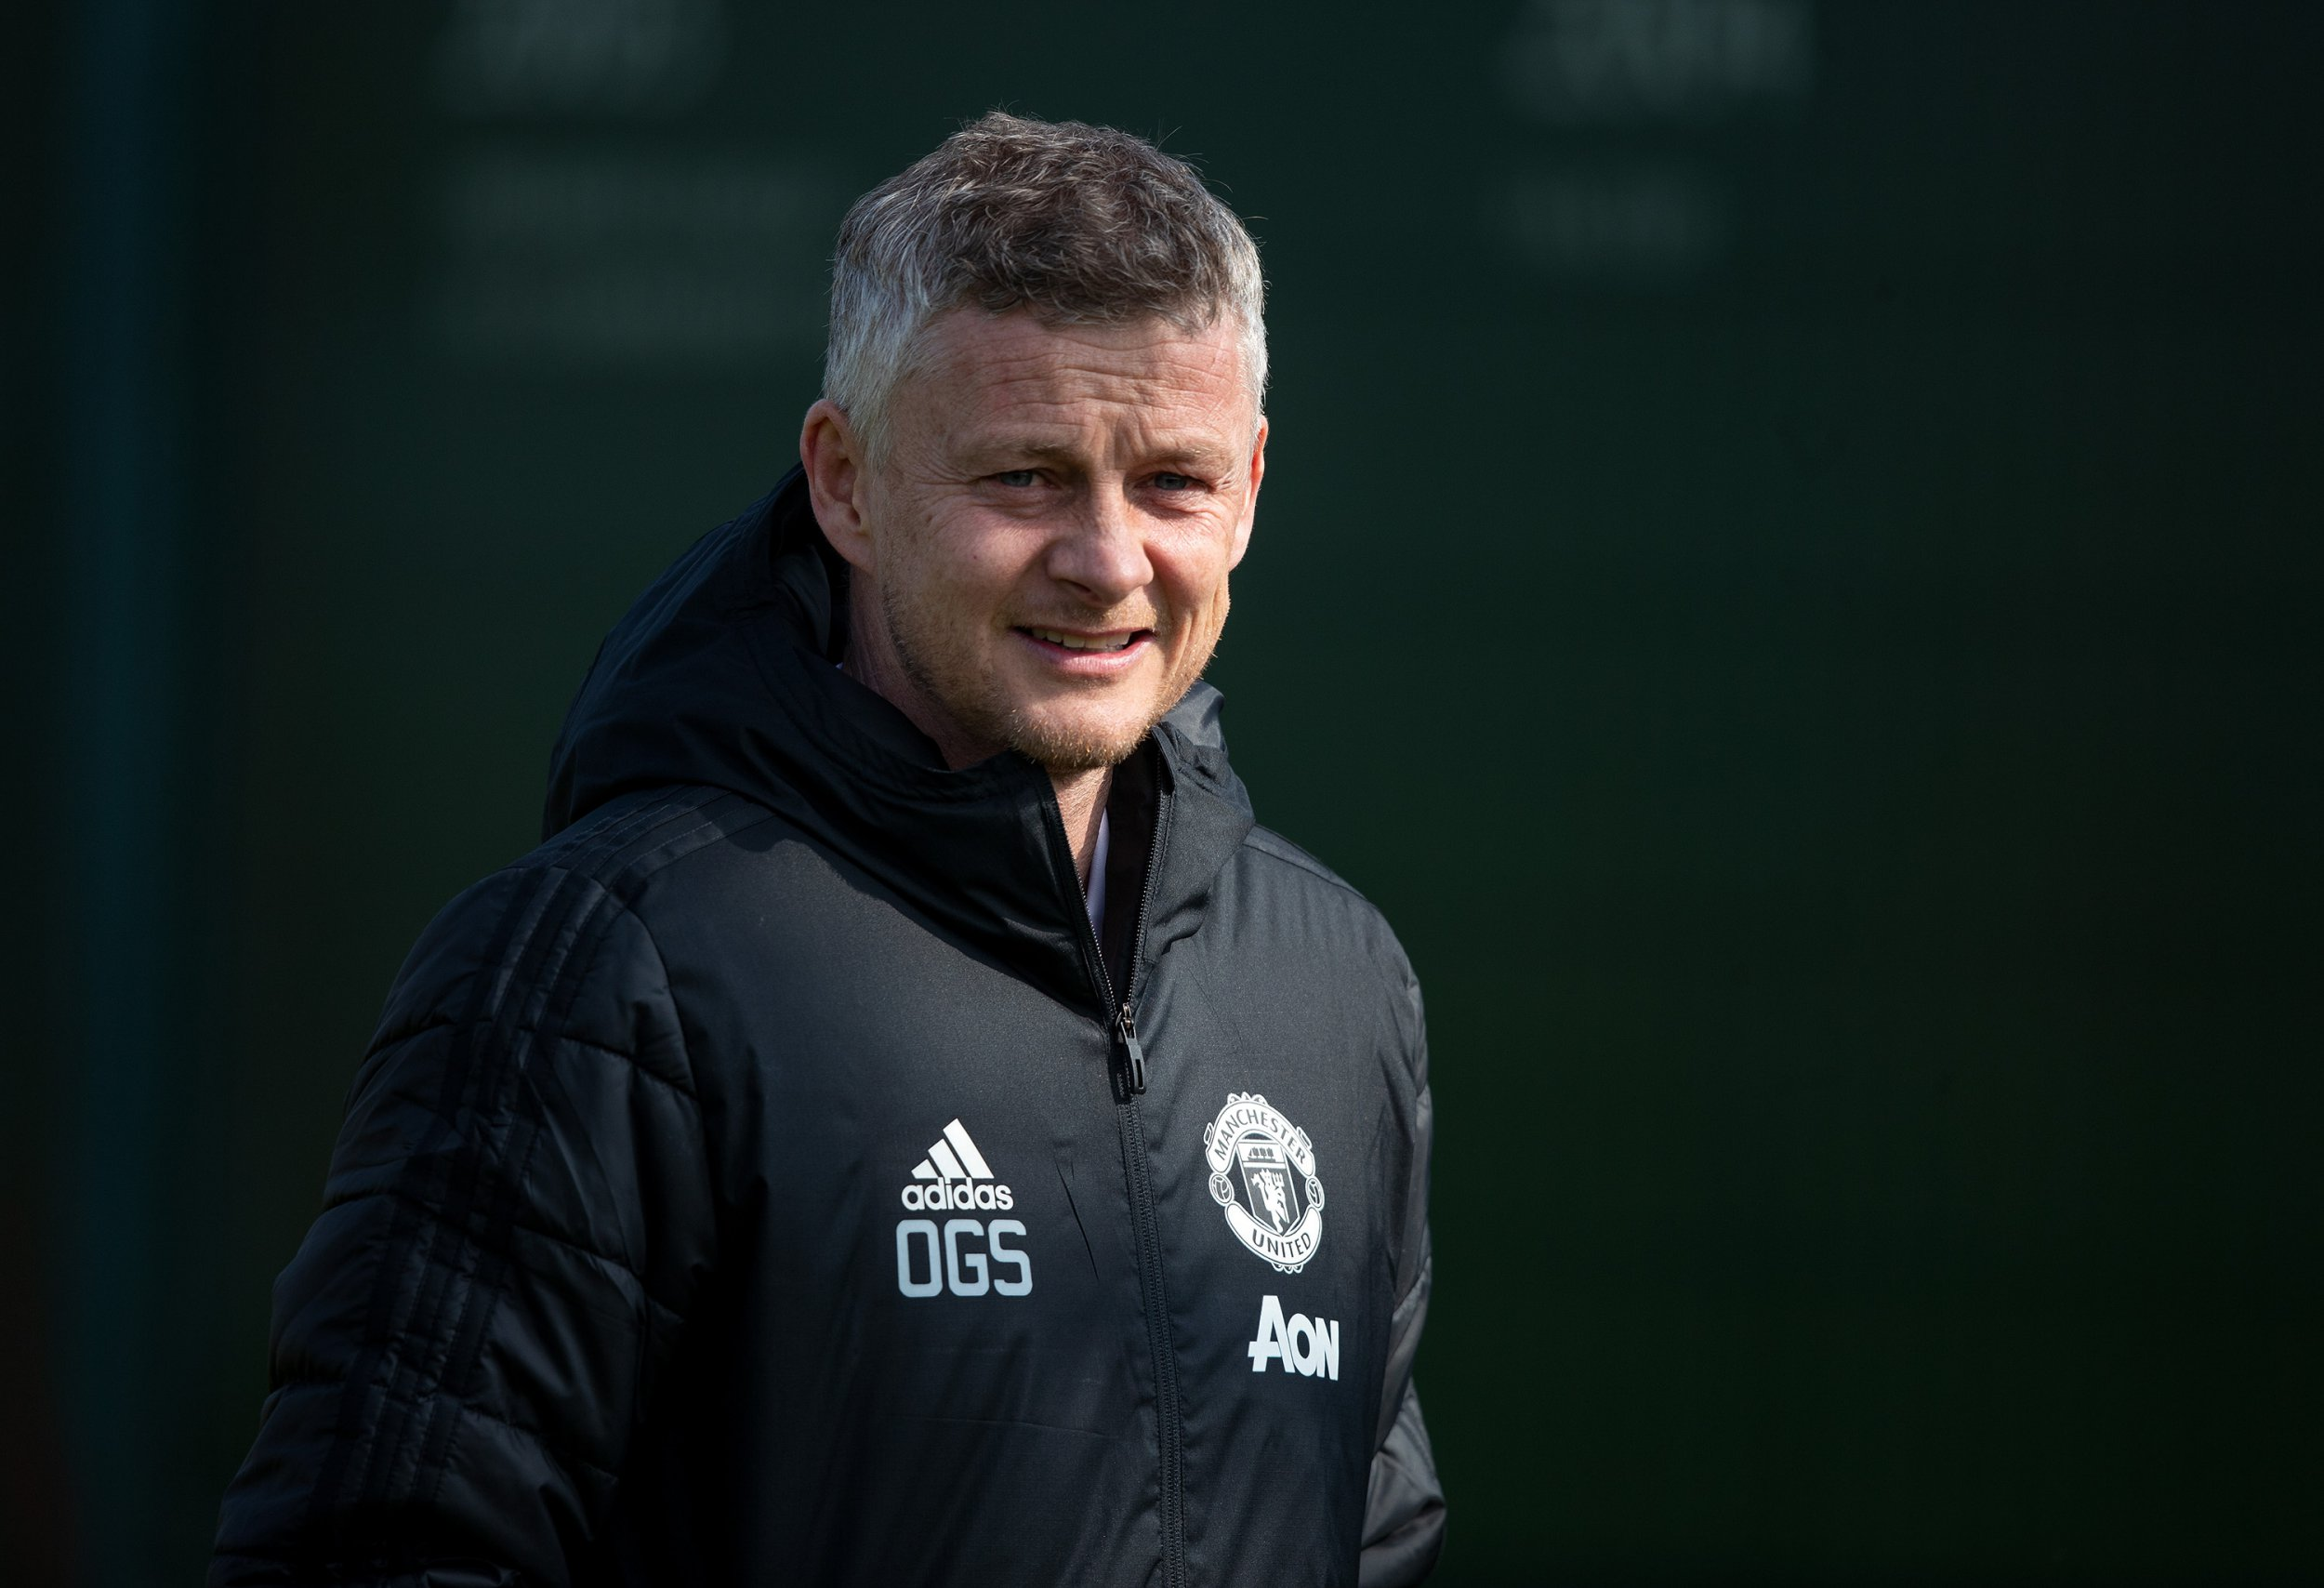 Manchester United manager Ole Gunnar Solskjaer during the training session at the Aon Training Complex, Manchester. PRESS ASSOCIATION Photo. Picture date: Tuesday April 9, 2019. See PA story SOCCER Man Utd. Photo credit should read: Ian Hodgson/PA Wire